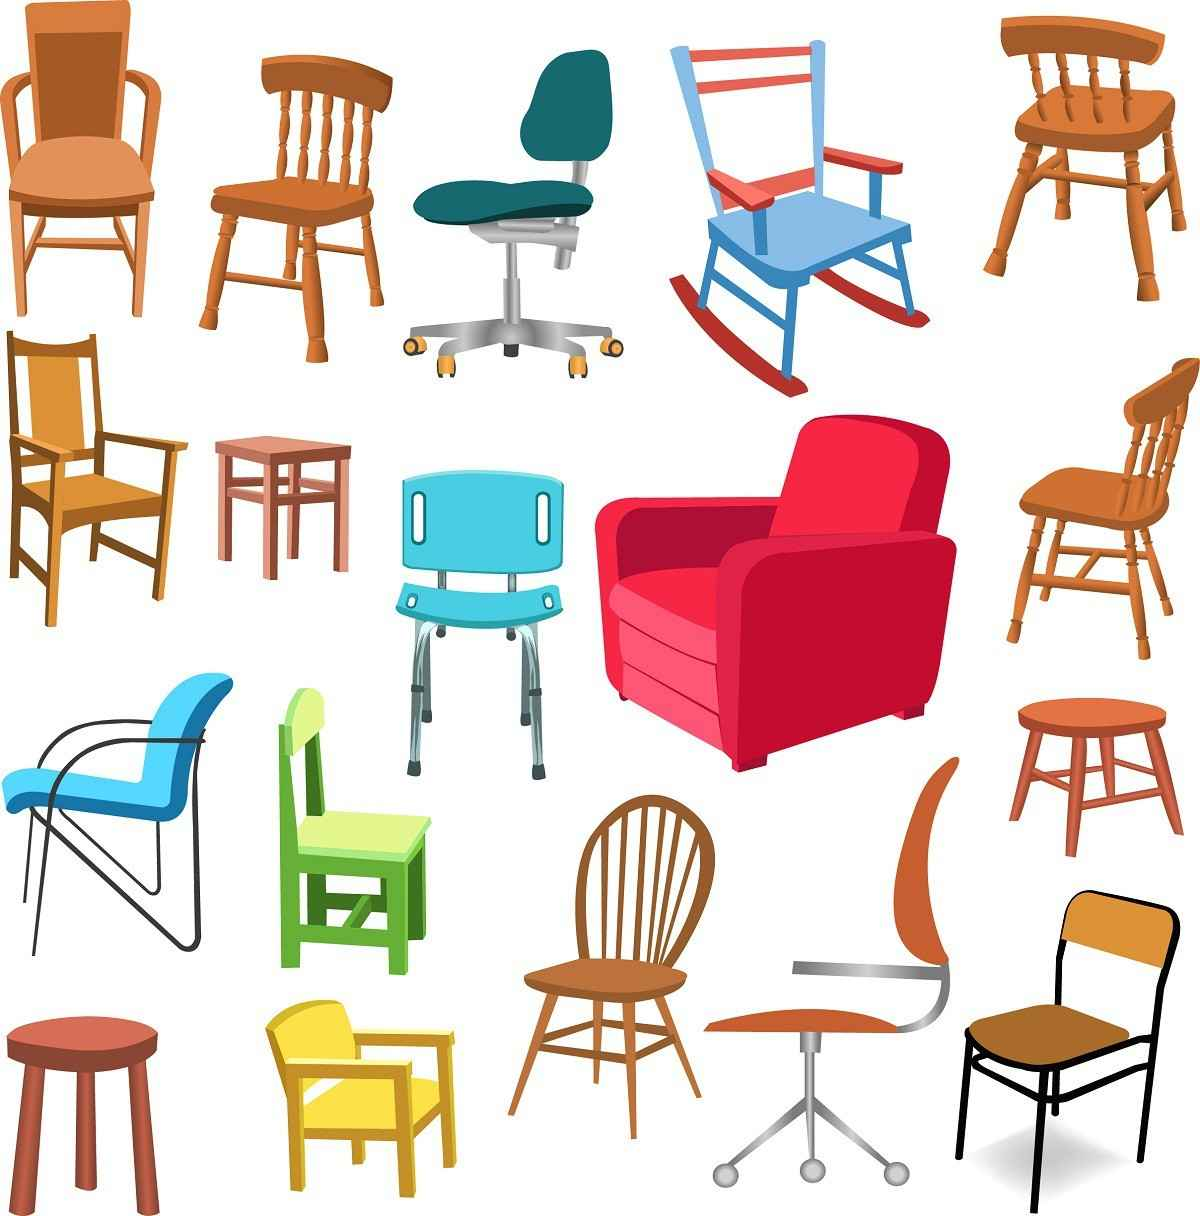 Furniture set 02 png